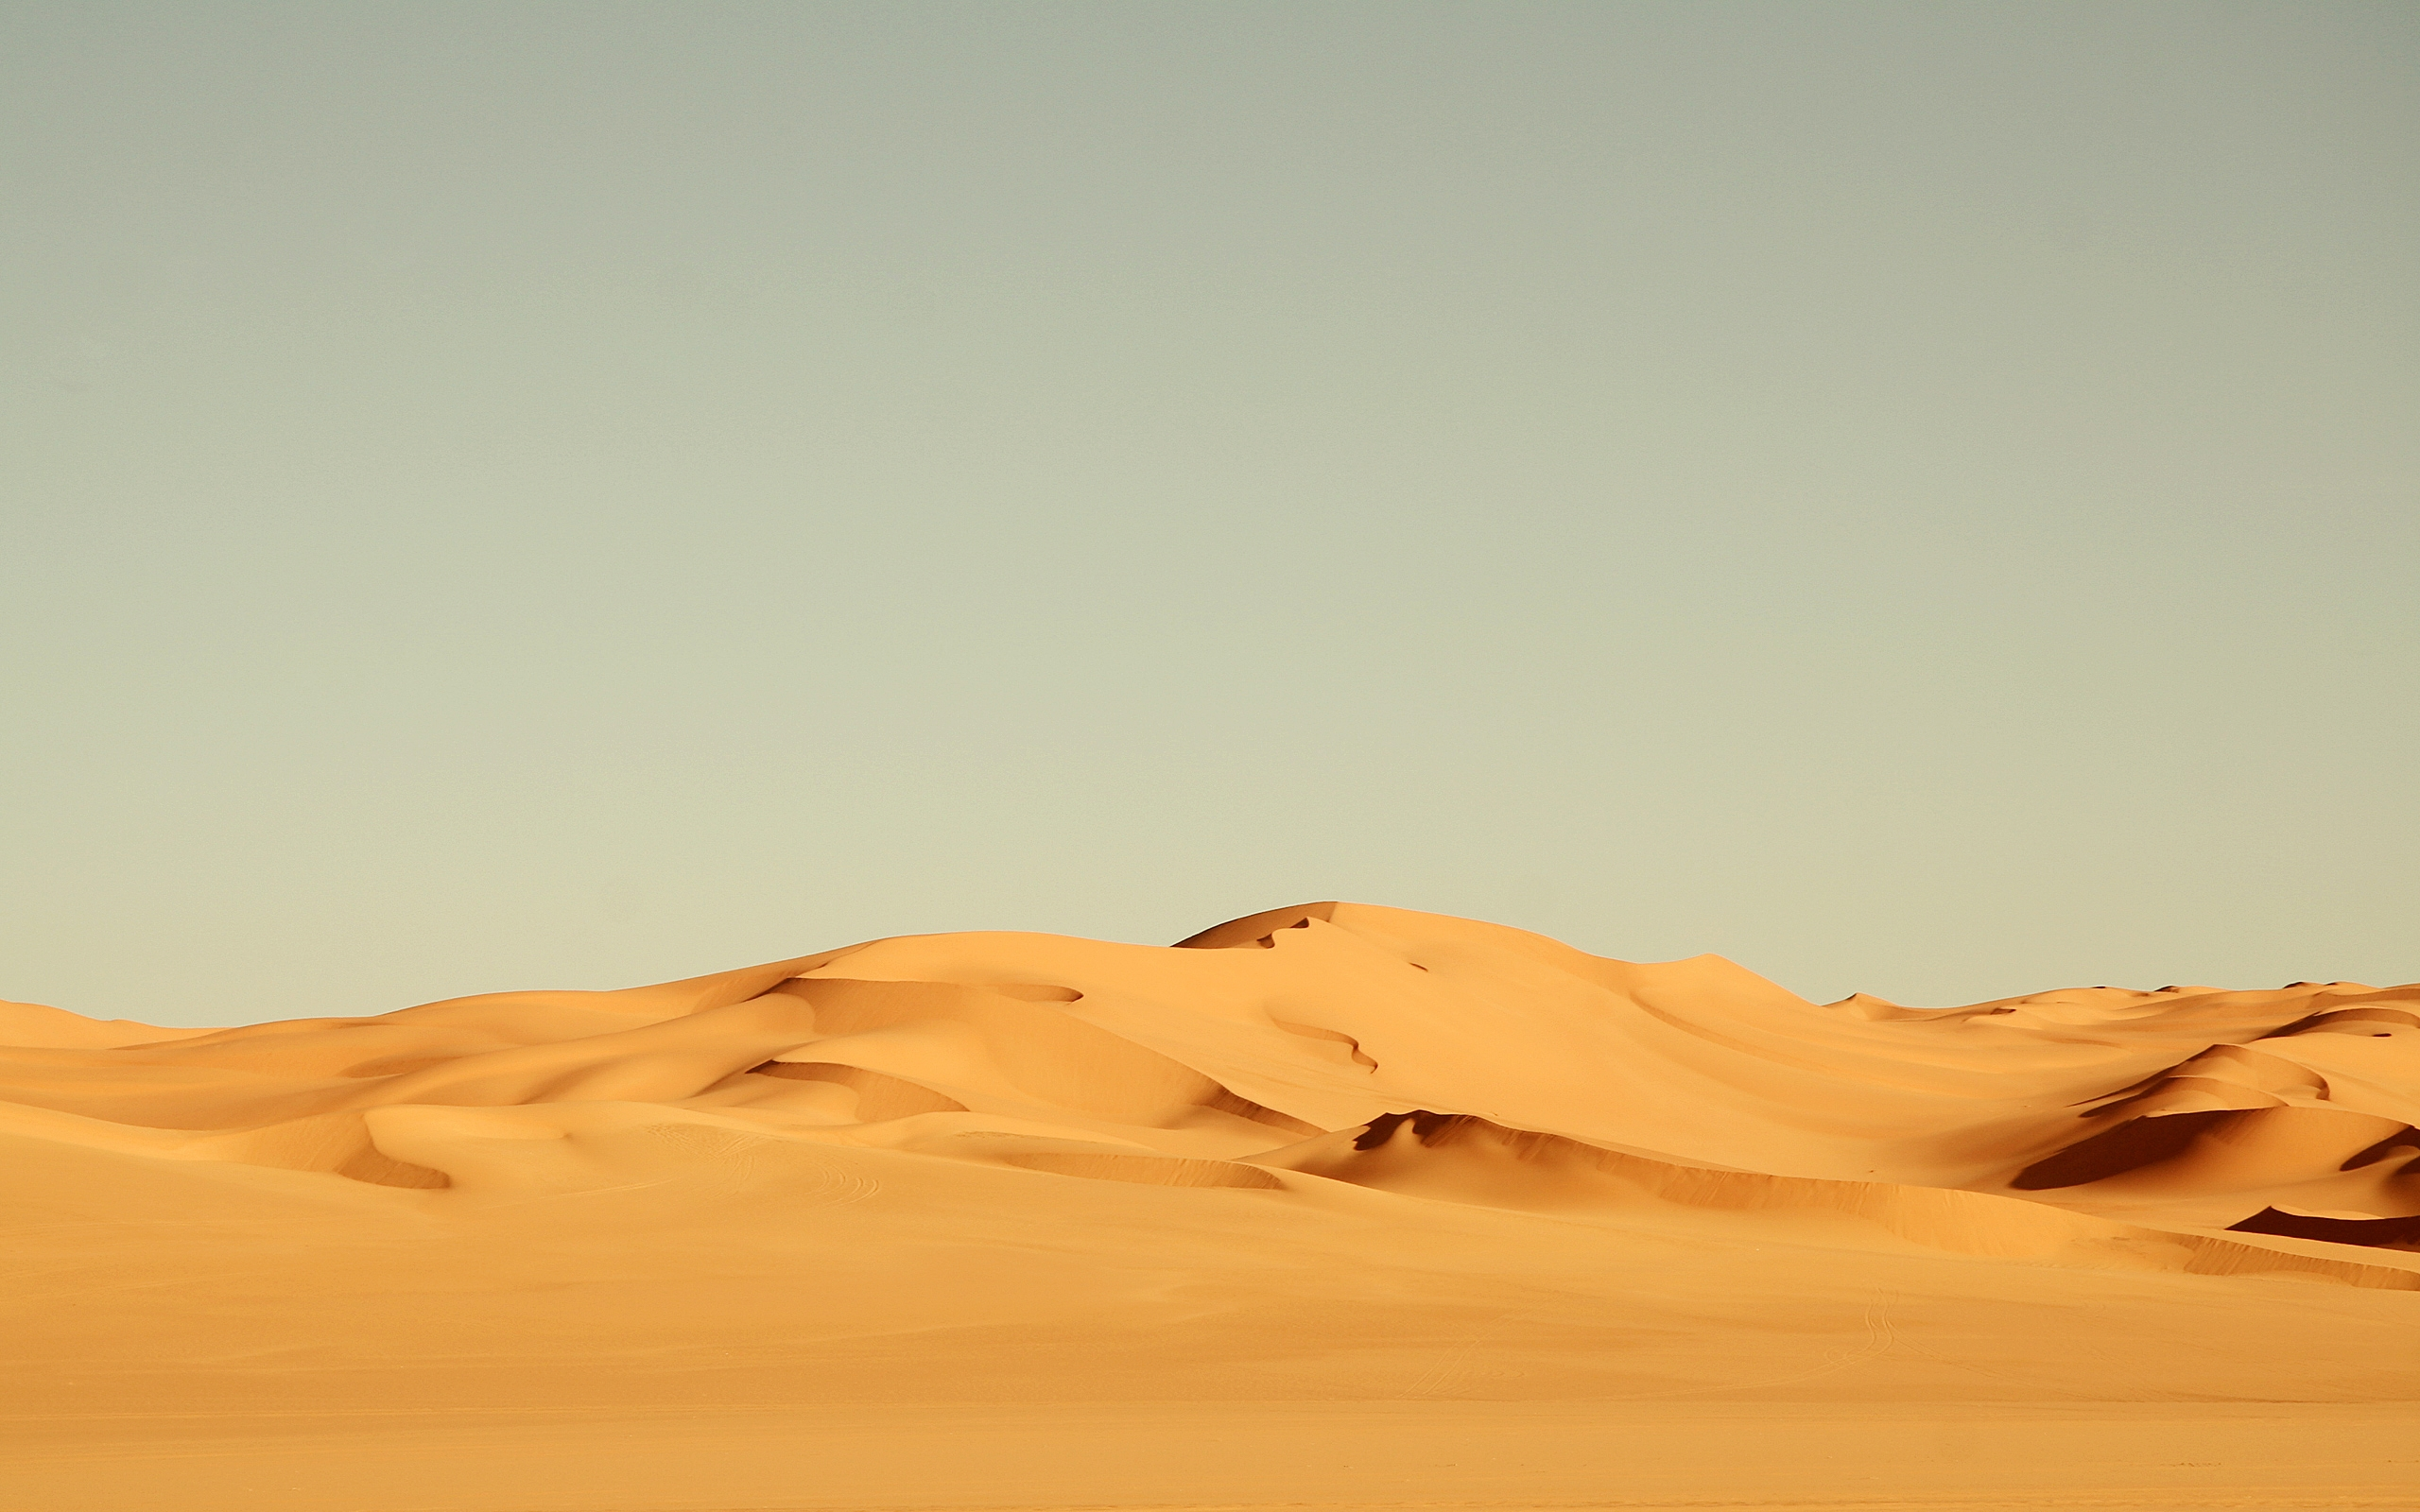 2560x1600 Sahara Desert Desktop Pc And Mac Wallpaper